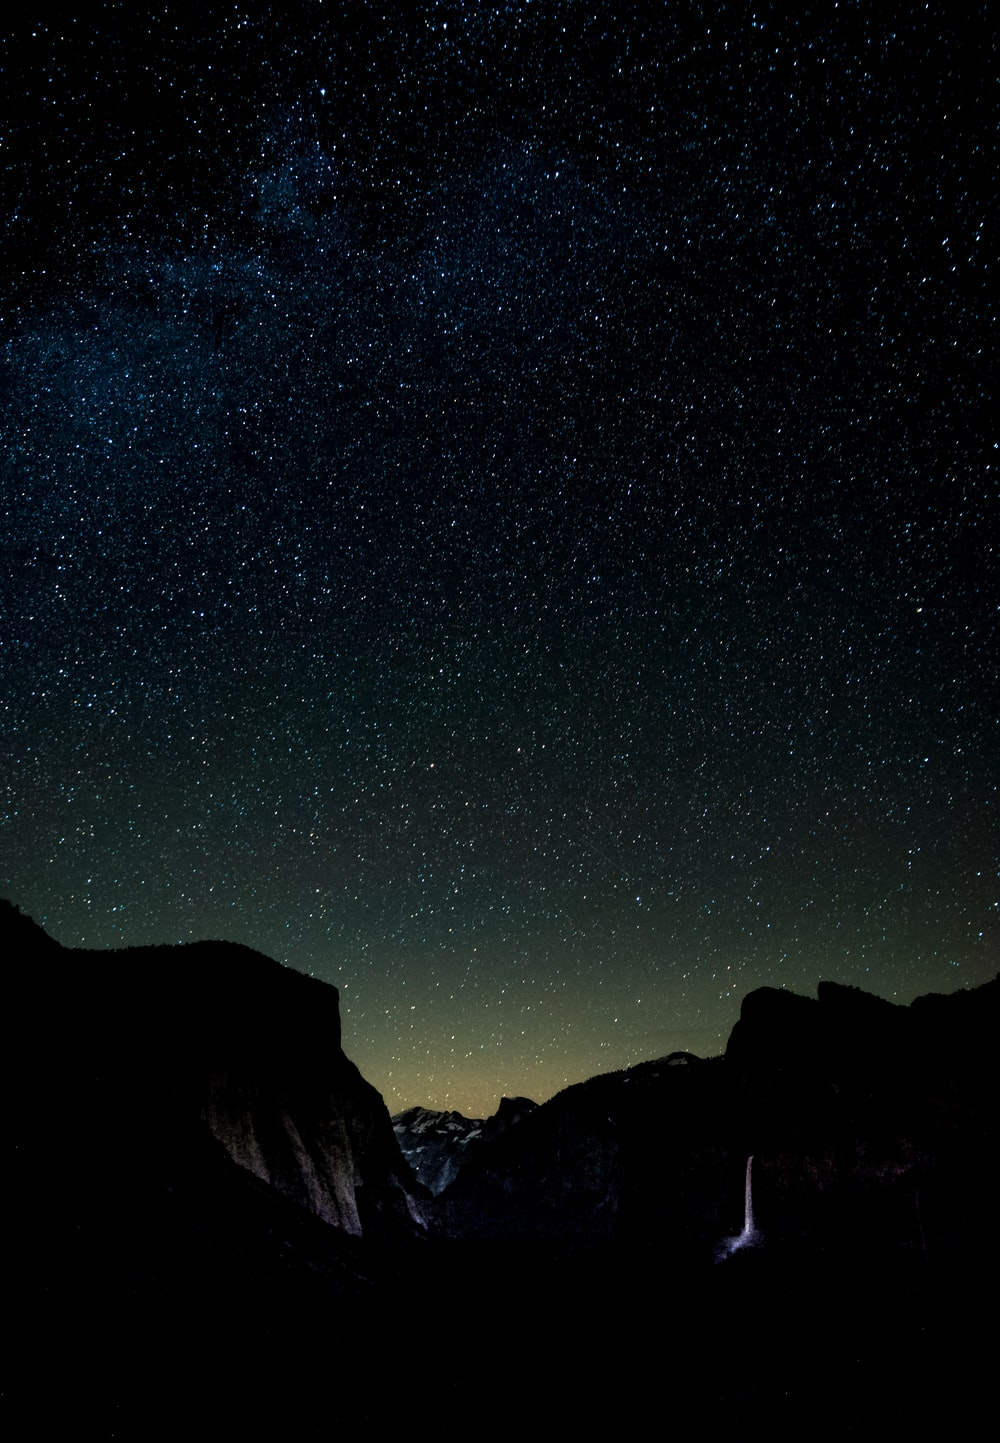 Starry Night Pictures | Download Free Images on Unsplash